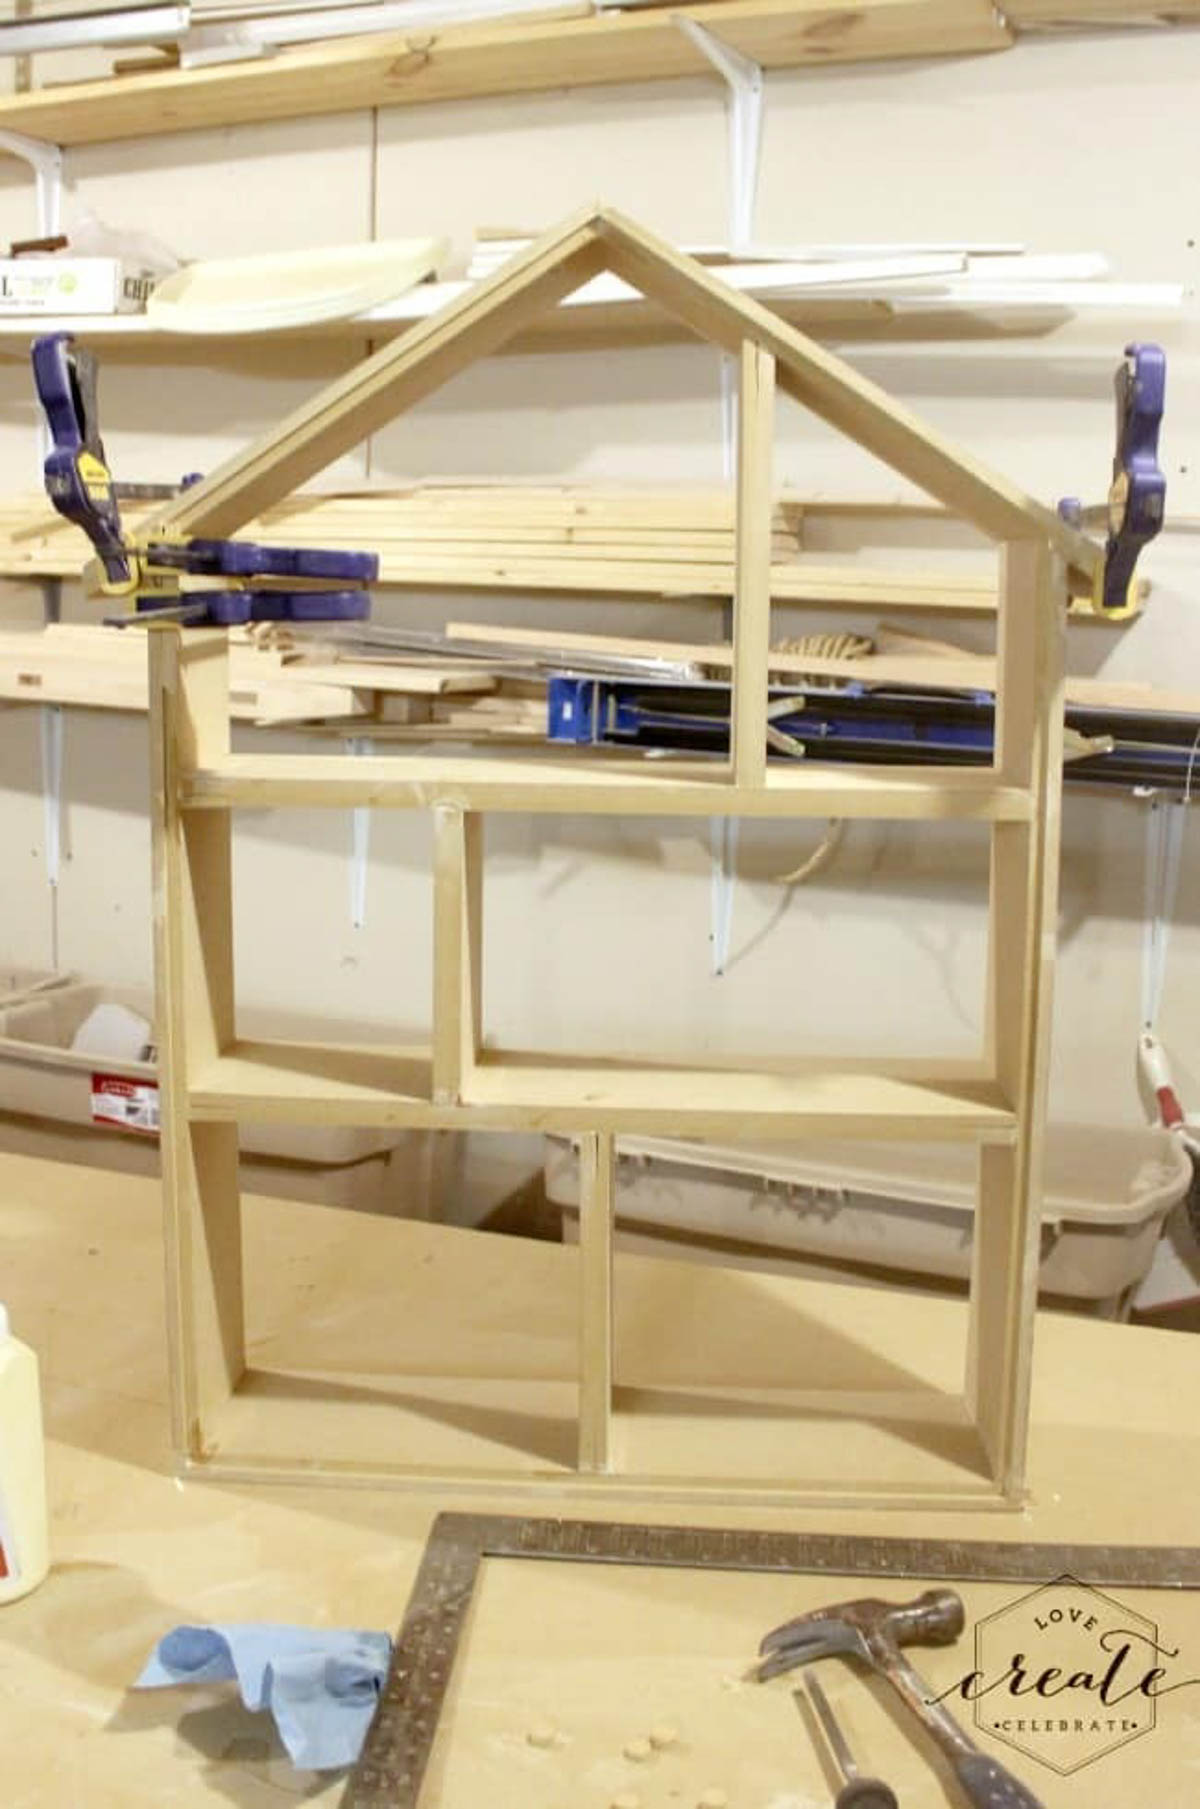 Framed house bookshelf being held together with clamps